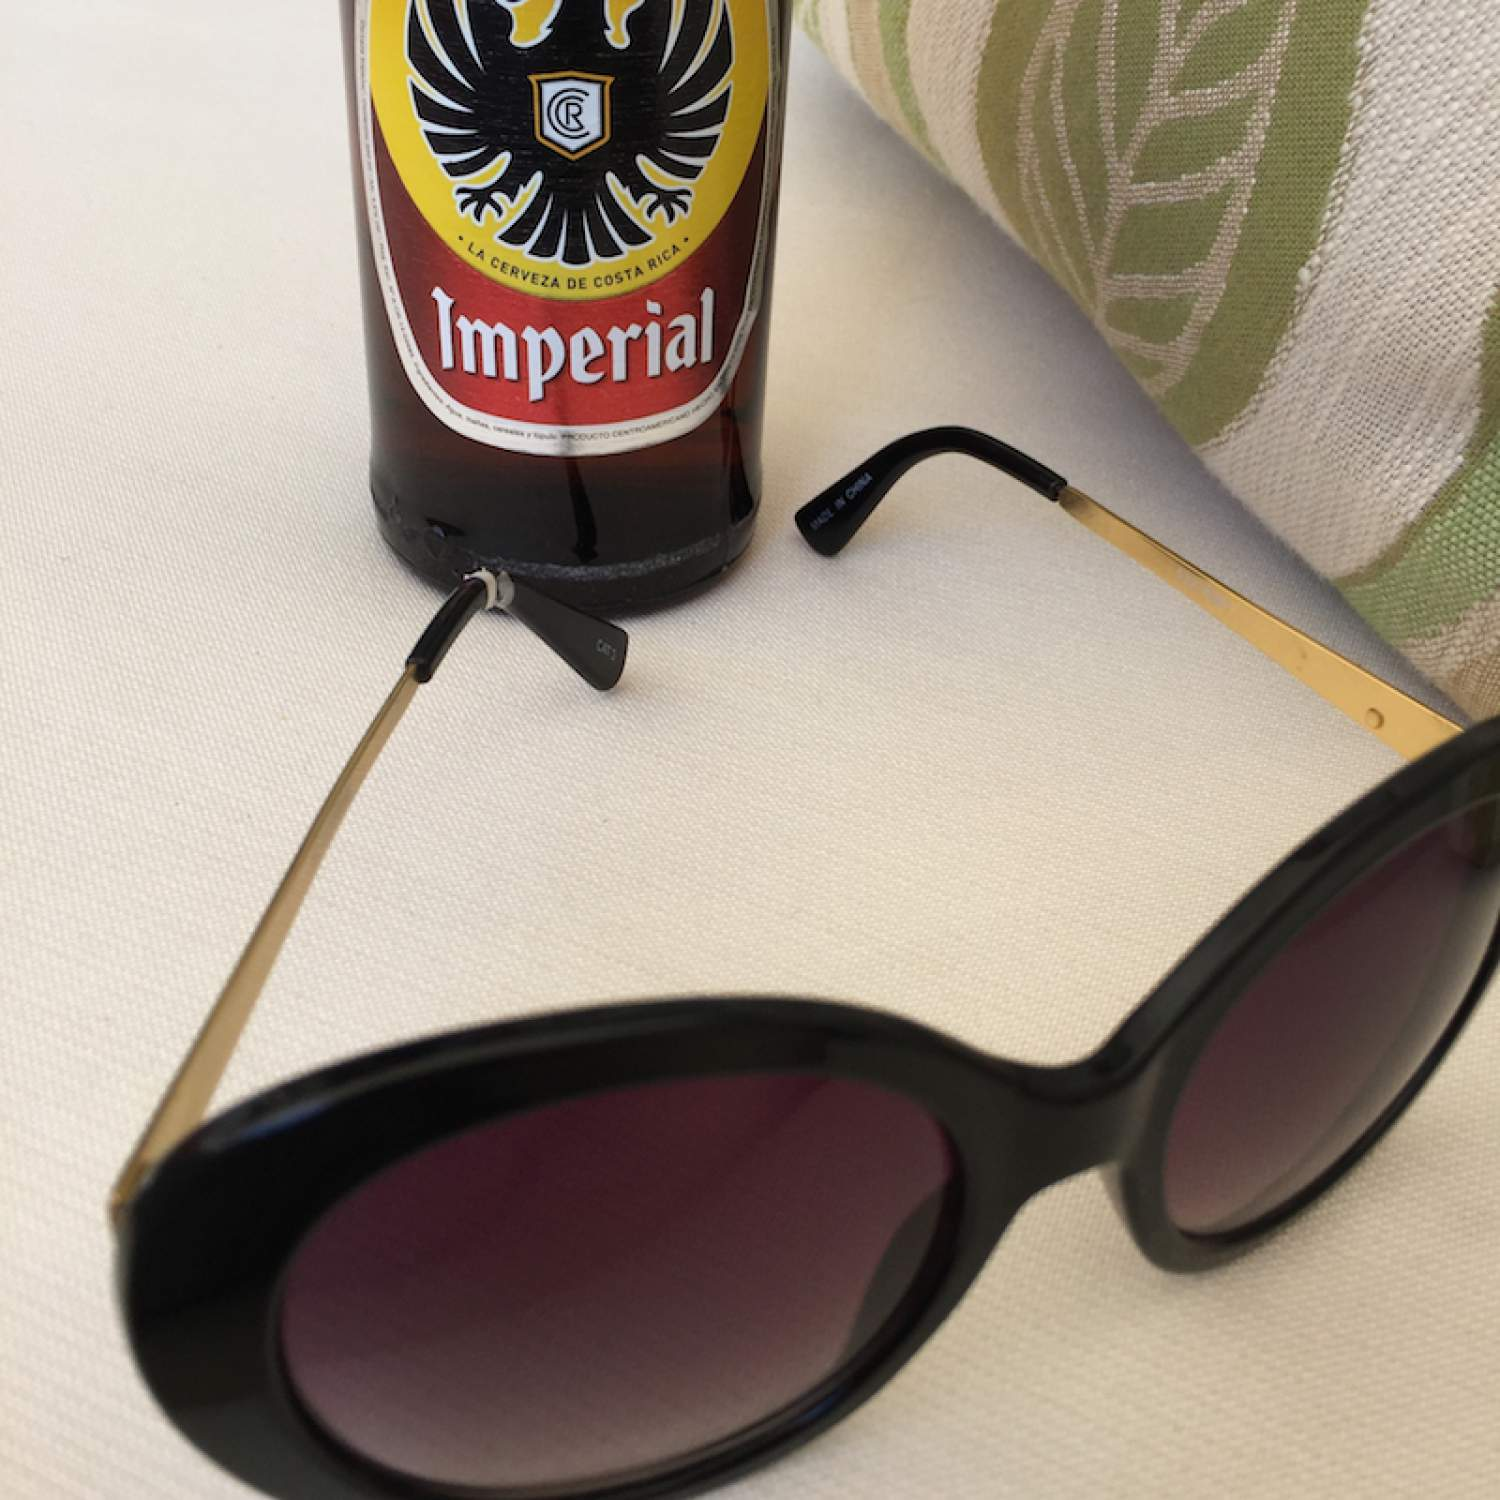 Imperial beer on vacation